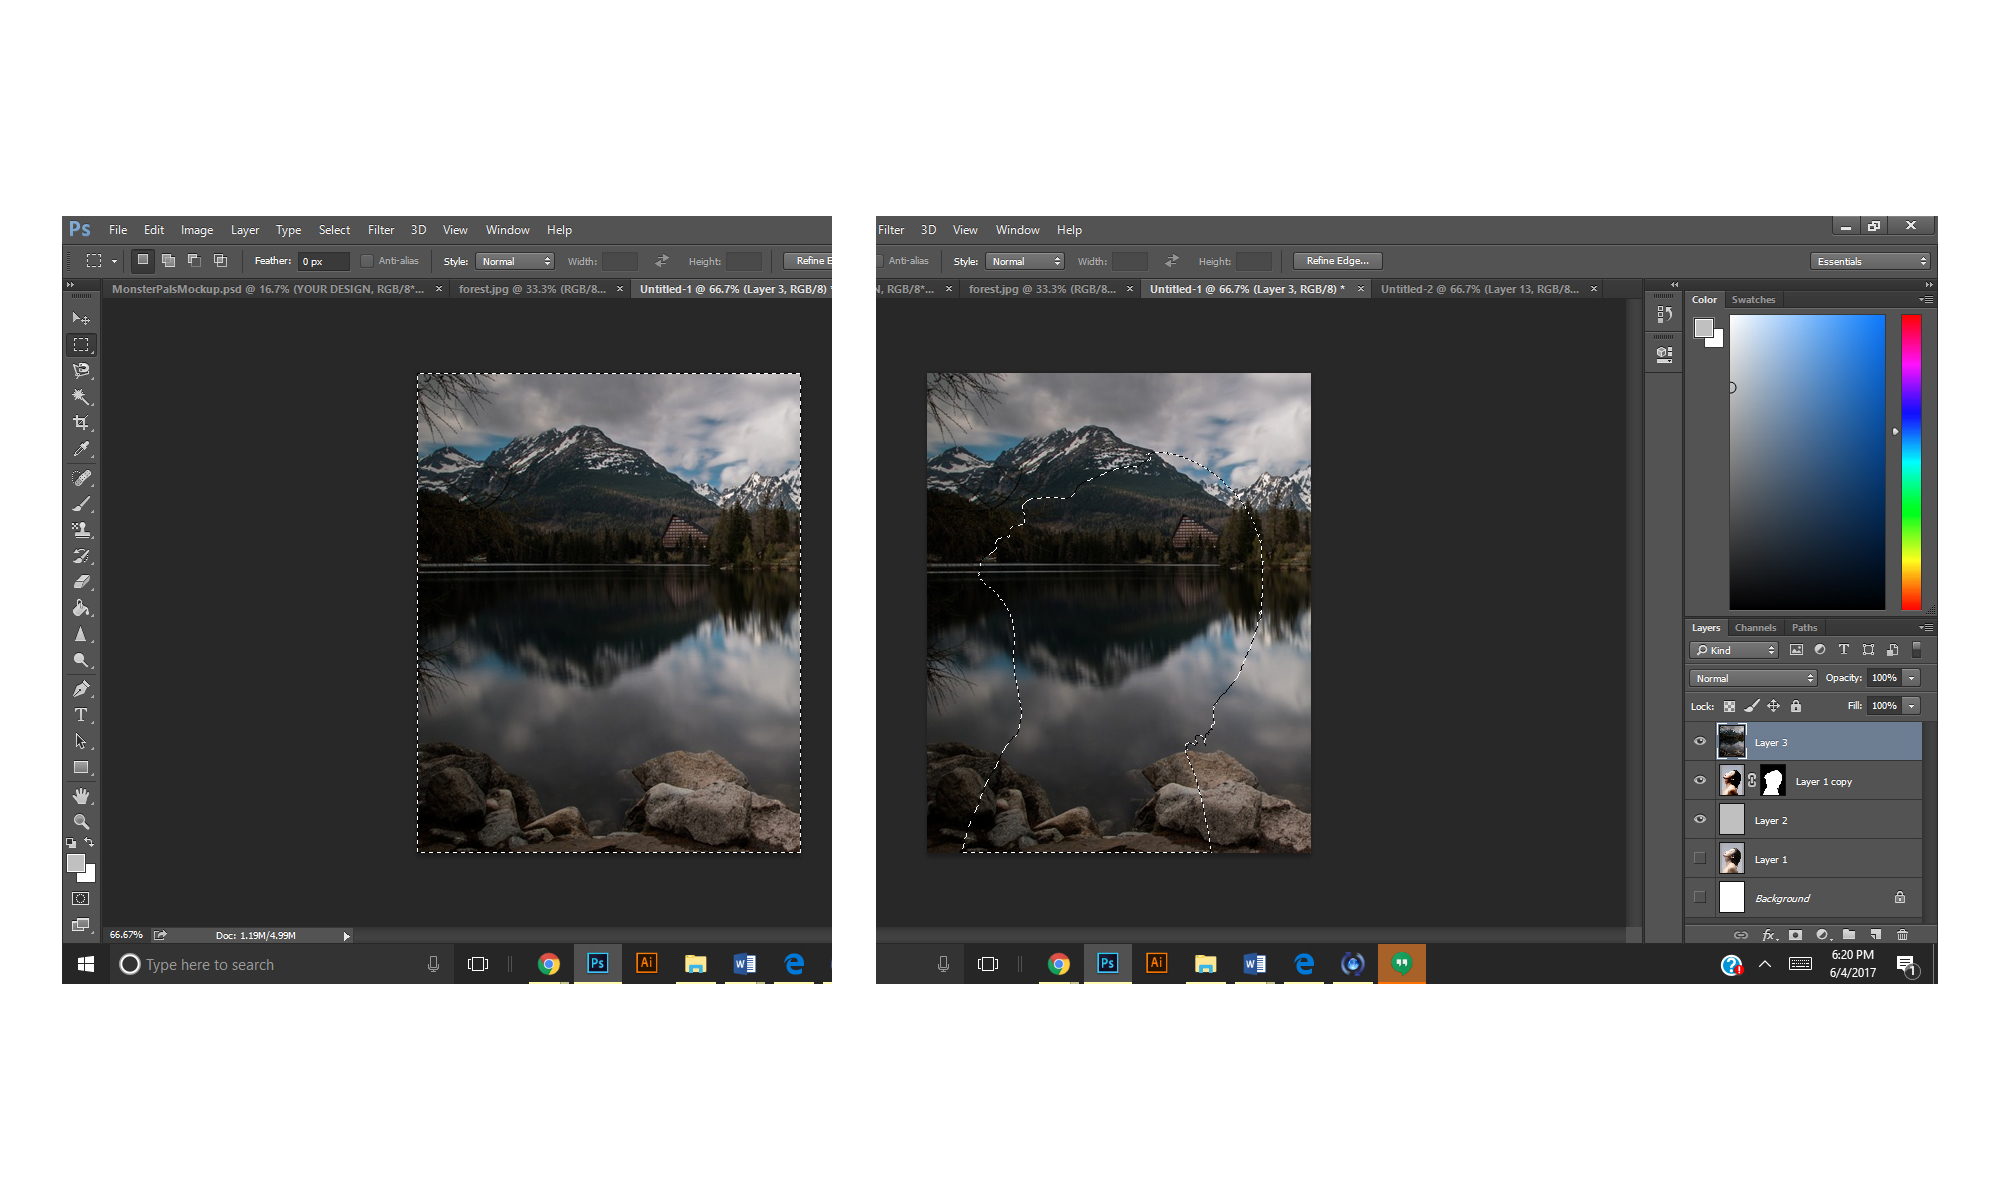 STEPS 3 - Creating Double Exposures in Adobe Photoshop - FilterGrade Blog